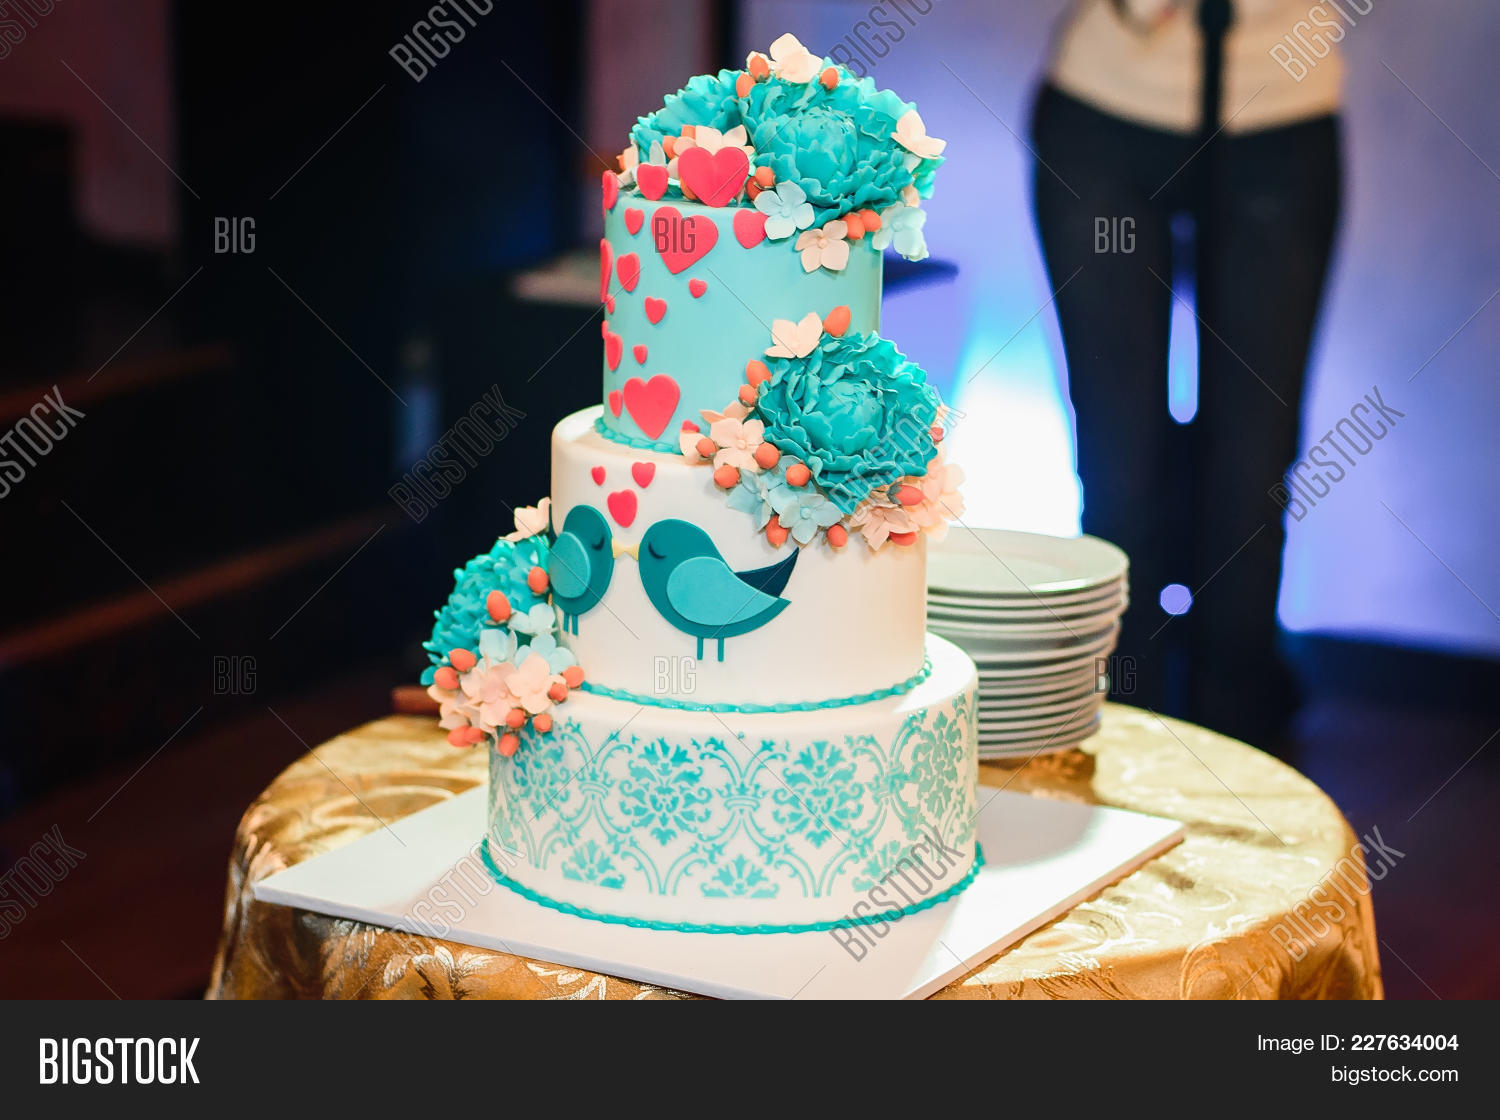 Wedding cake three image photo free trial bigstock wedding cake with three tiers of white blue glaze decorated with flowers and hearts on the izmirmasajfo